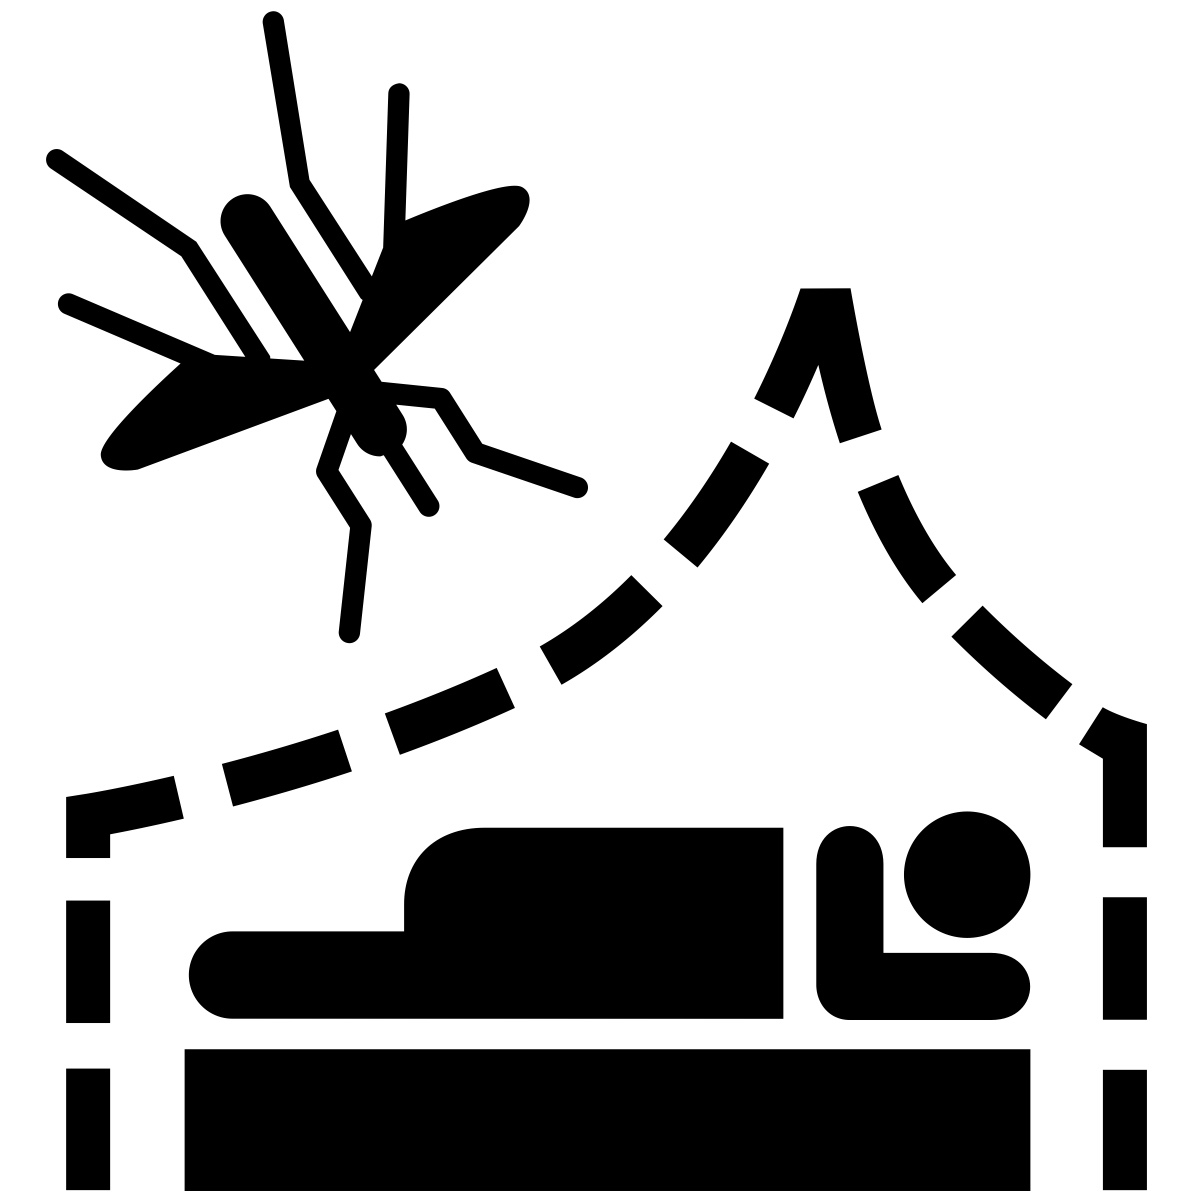 7. ALWAYS TUCK. - When using your net, make sure that you tuck it in on the sides of your bed. Anopheles mosquitoes are designed to search for an opening and will travel on a downward trajectory to find this net breach when they come across the barrier.